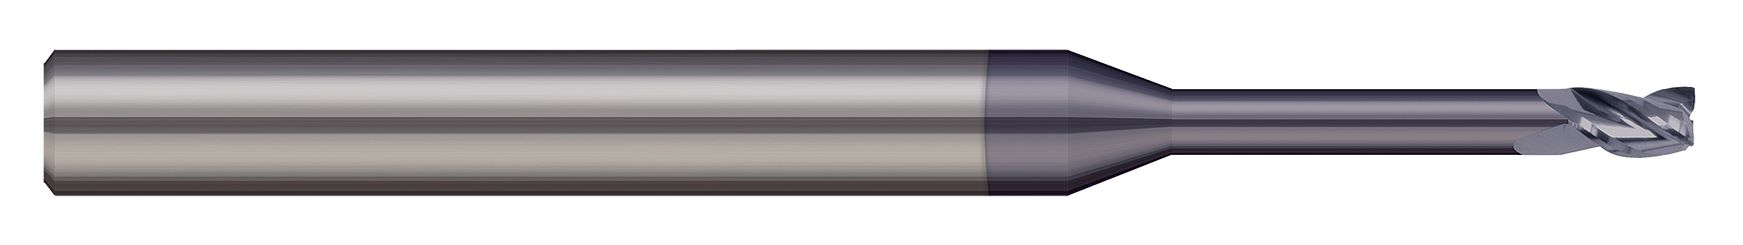 End Mills for Steels & High Temperature Alloys - Square - 2 & 3 Flute - Long Reach, Stub Flute